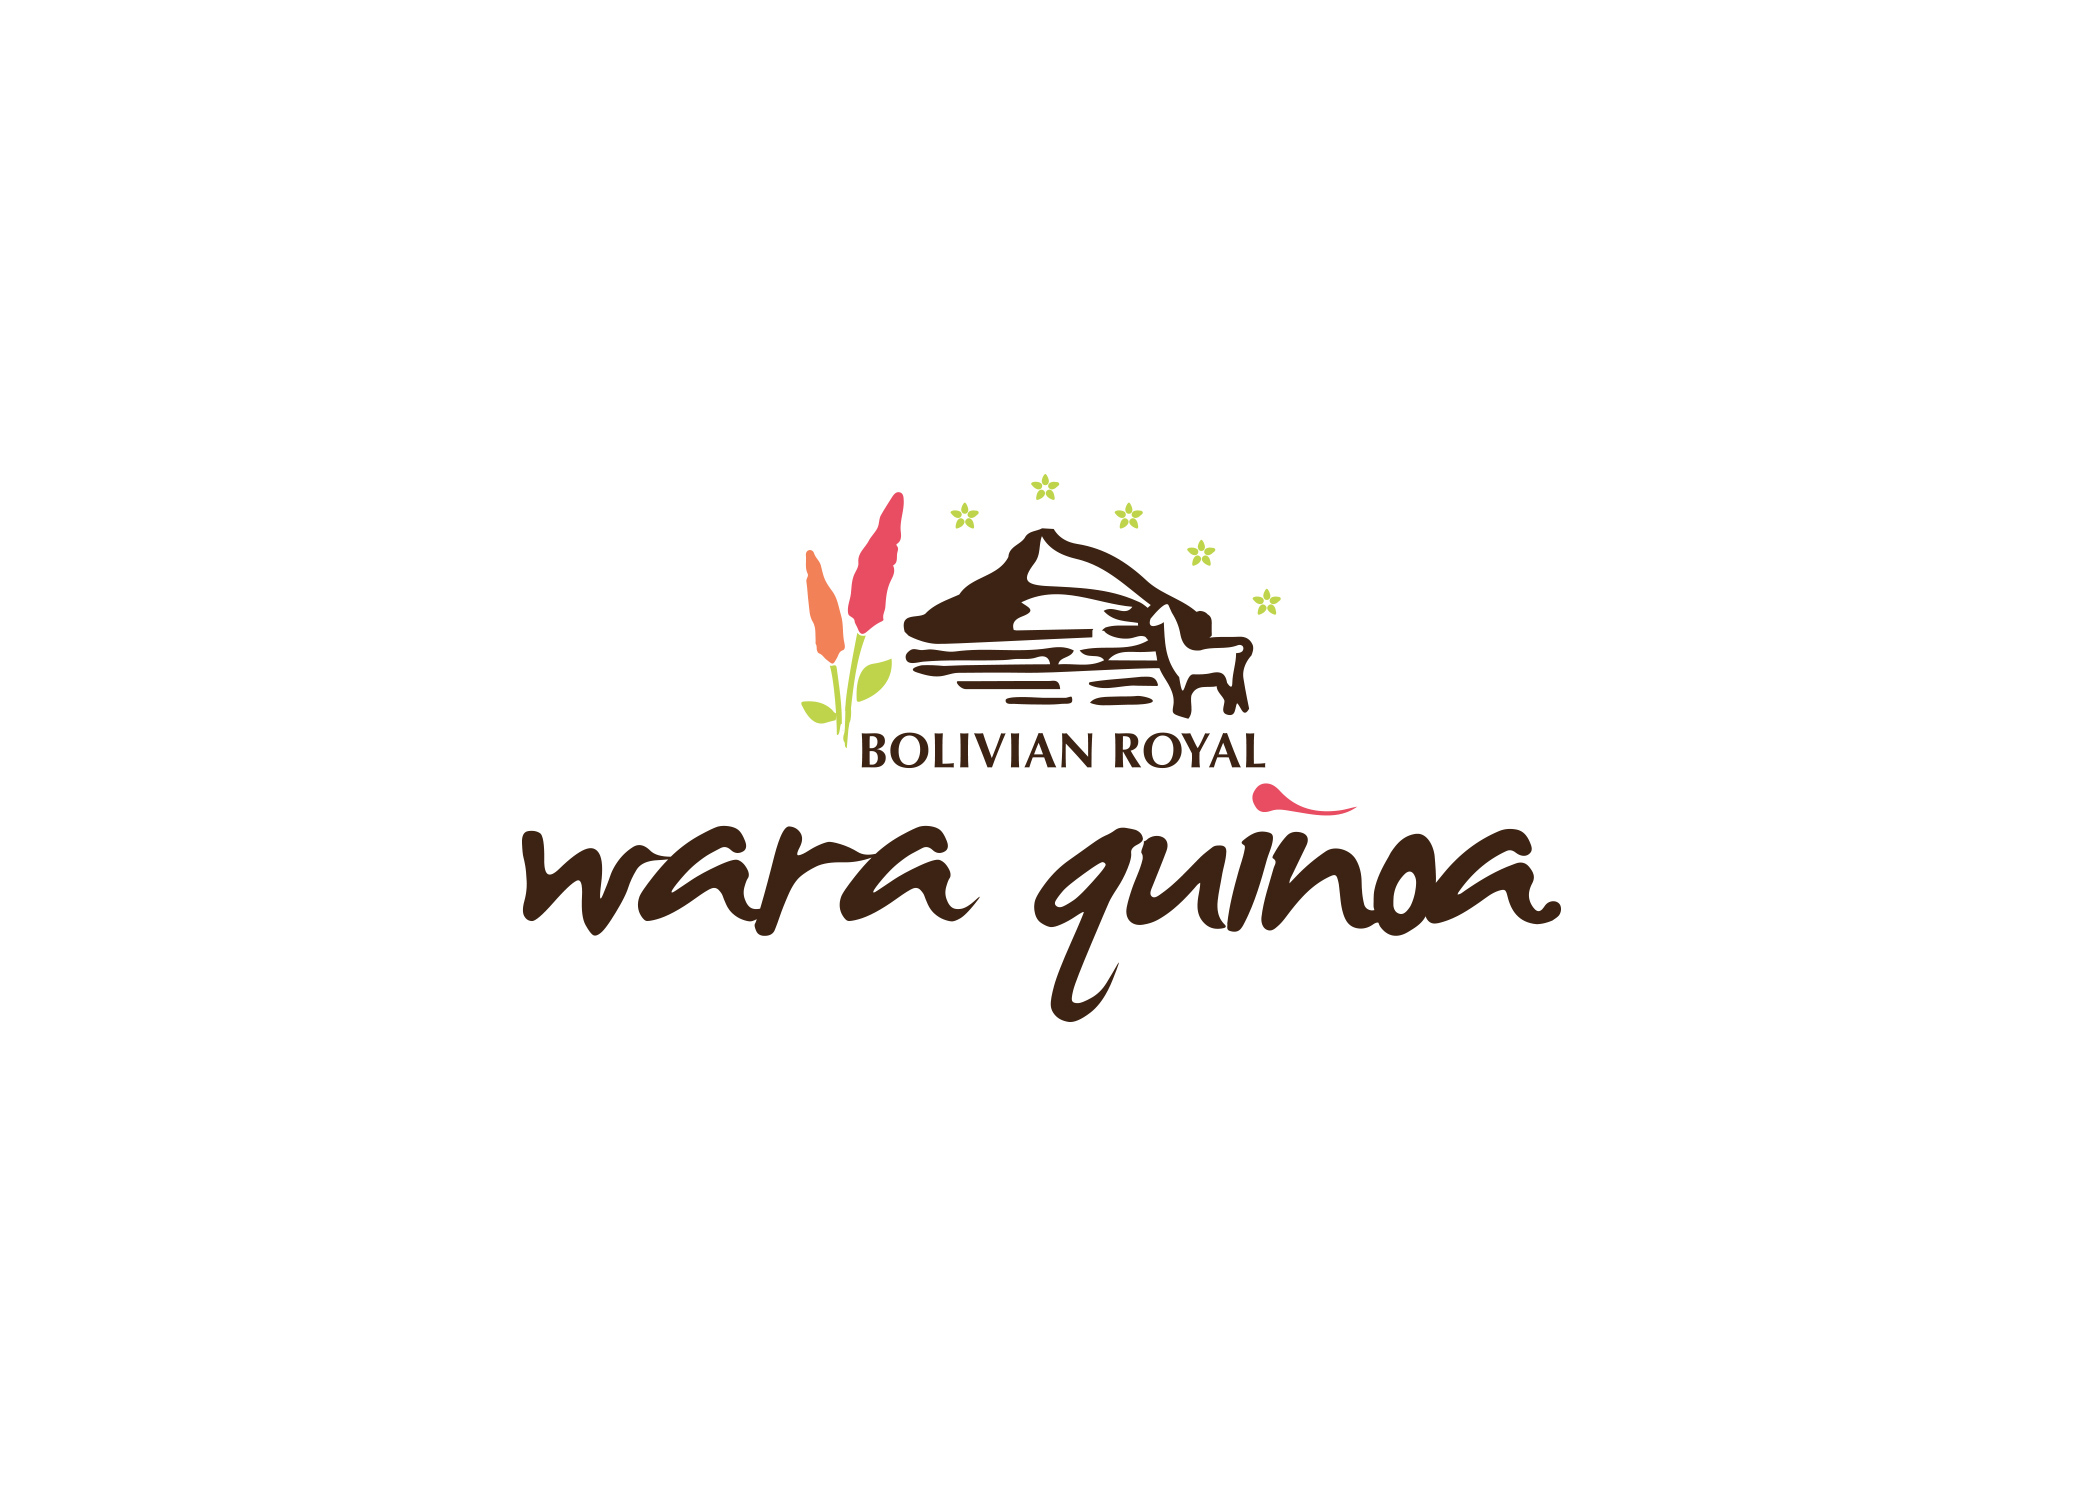 Wara Quinoa logo design with the valley and llama icons and brown, pink and green color palette.